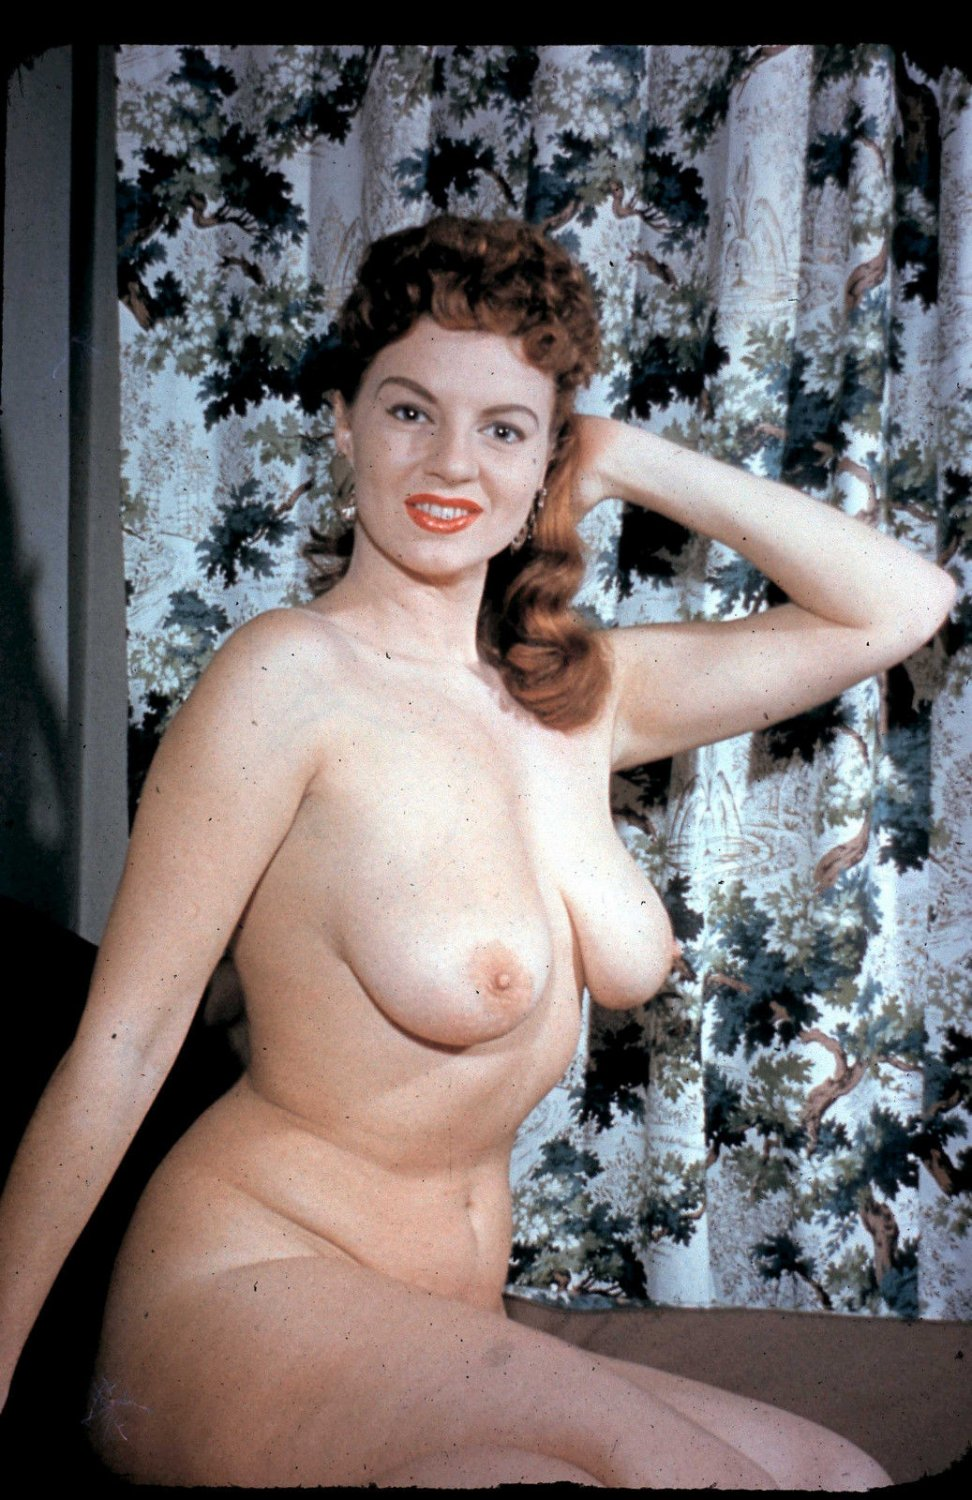 VINTAGE ORIGINAL JACKIE MILLER NUDE PHOTO COLOR SLIDE 35 MM 1950'S #182 RARE